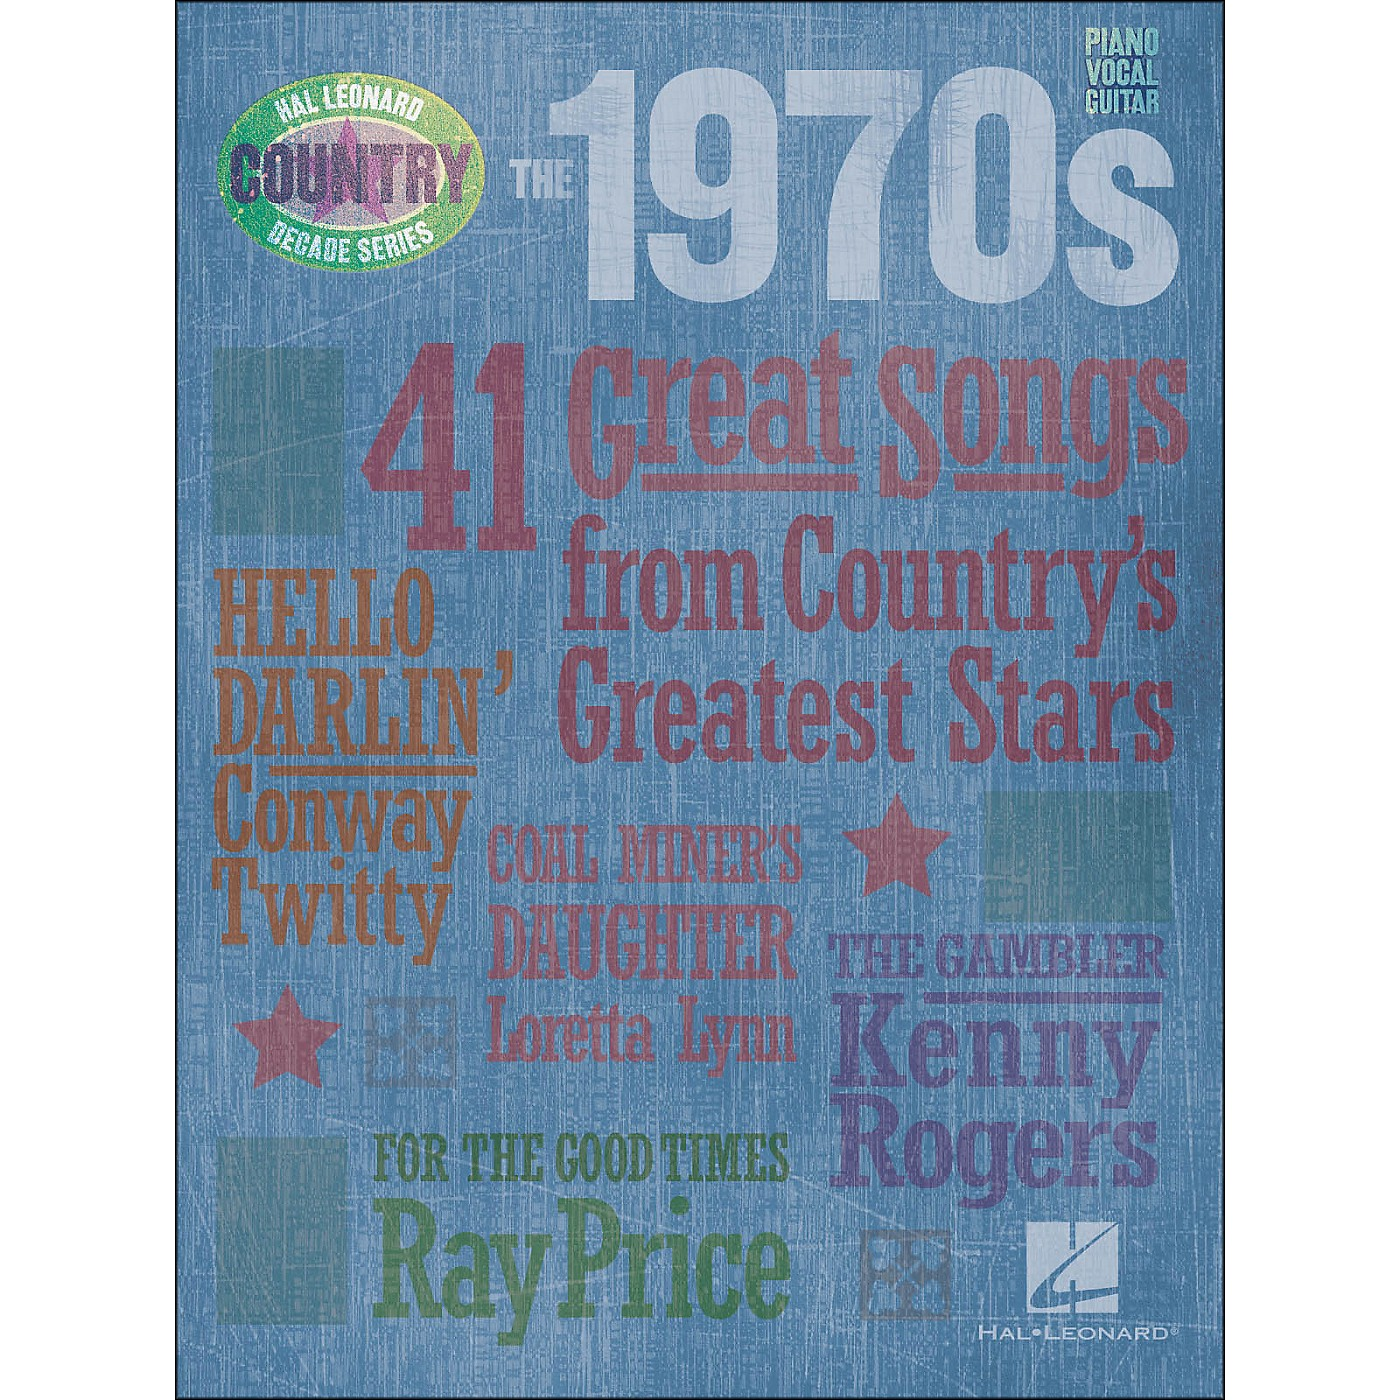 Hal Leonard The 1970s Country Decade Series arranged for piano, vocal, and guitar (P/V/G) thumbnail